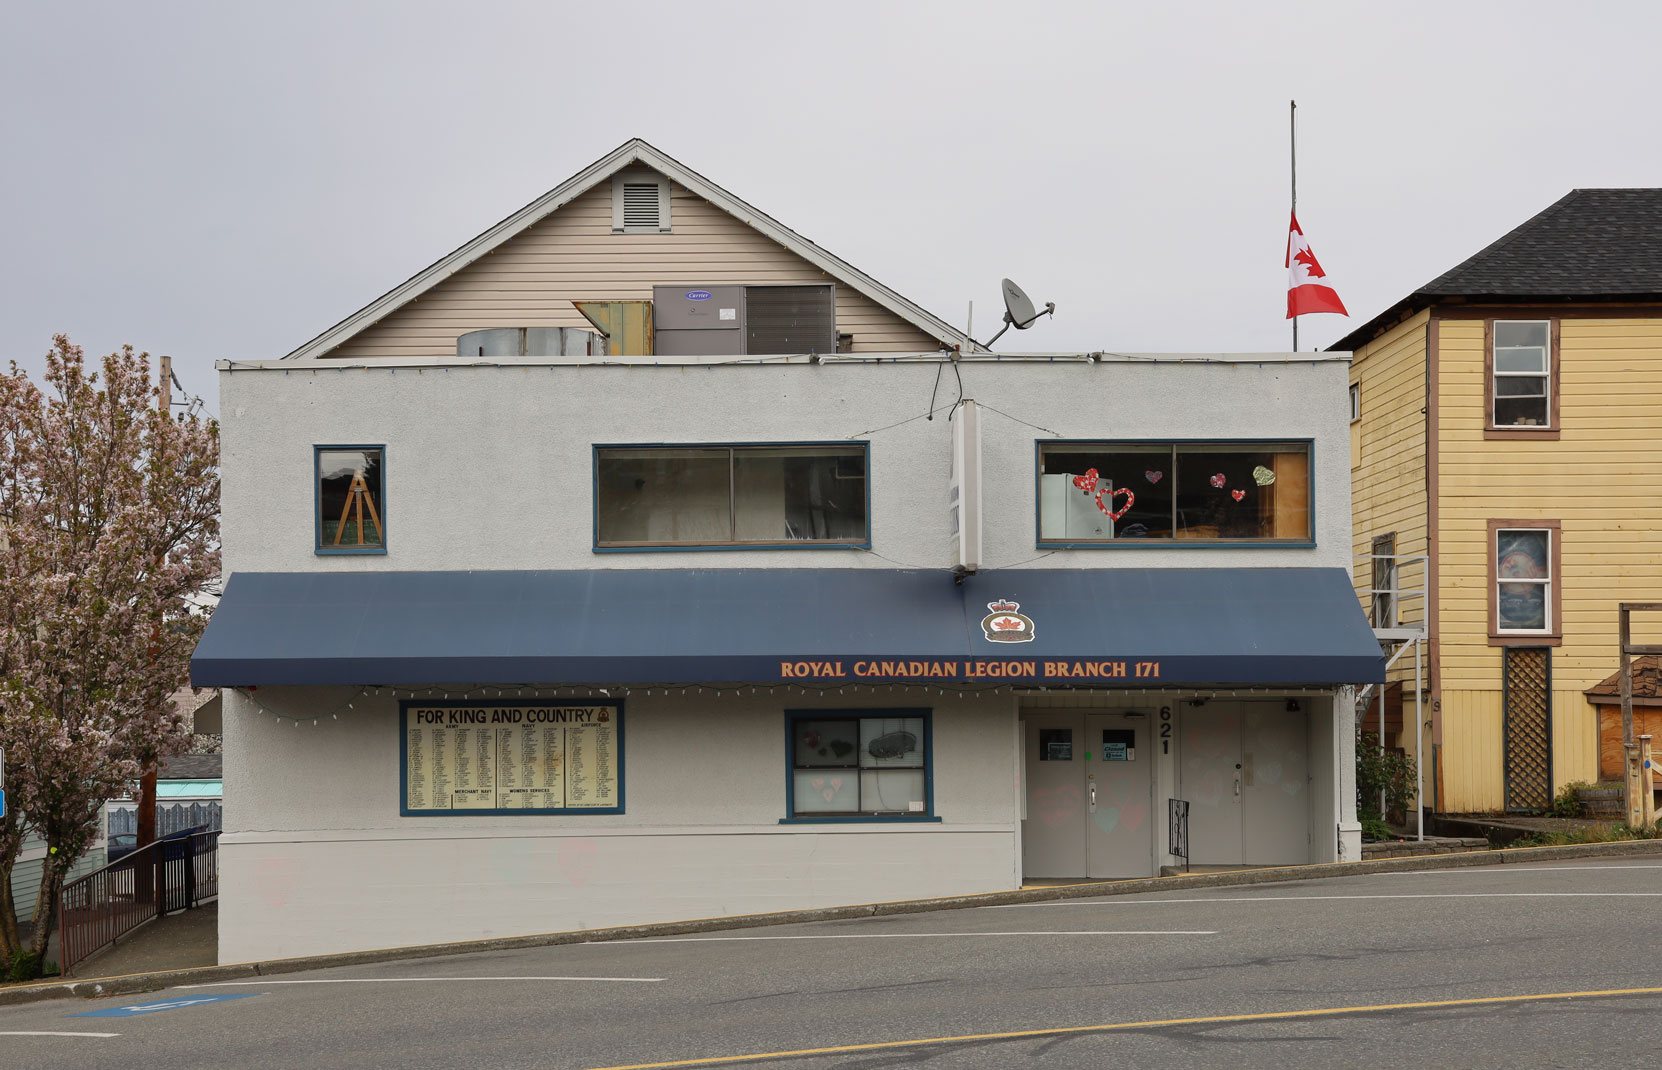 Royal Canadian Legion, Ladysmith Branch No. 171, 621 1st Avenue in downtown Ladysmith.